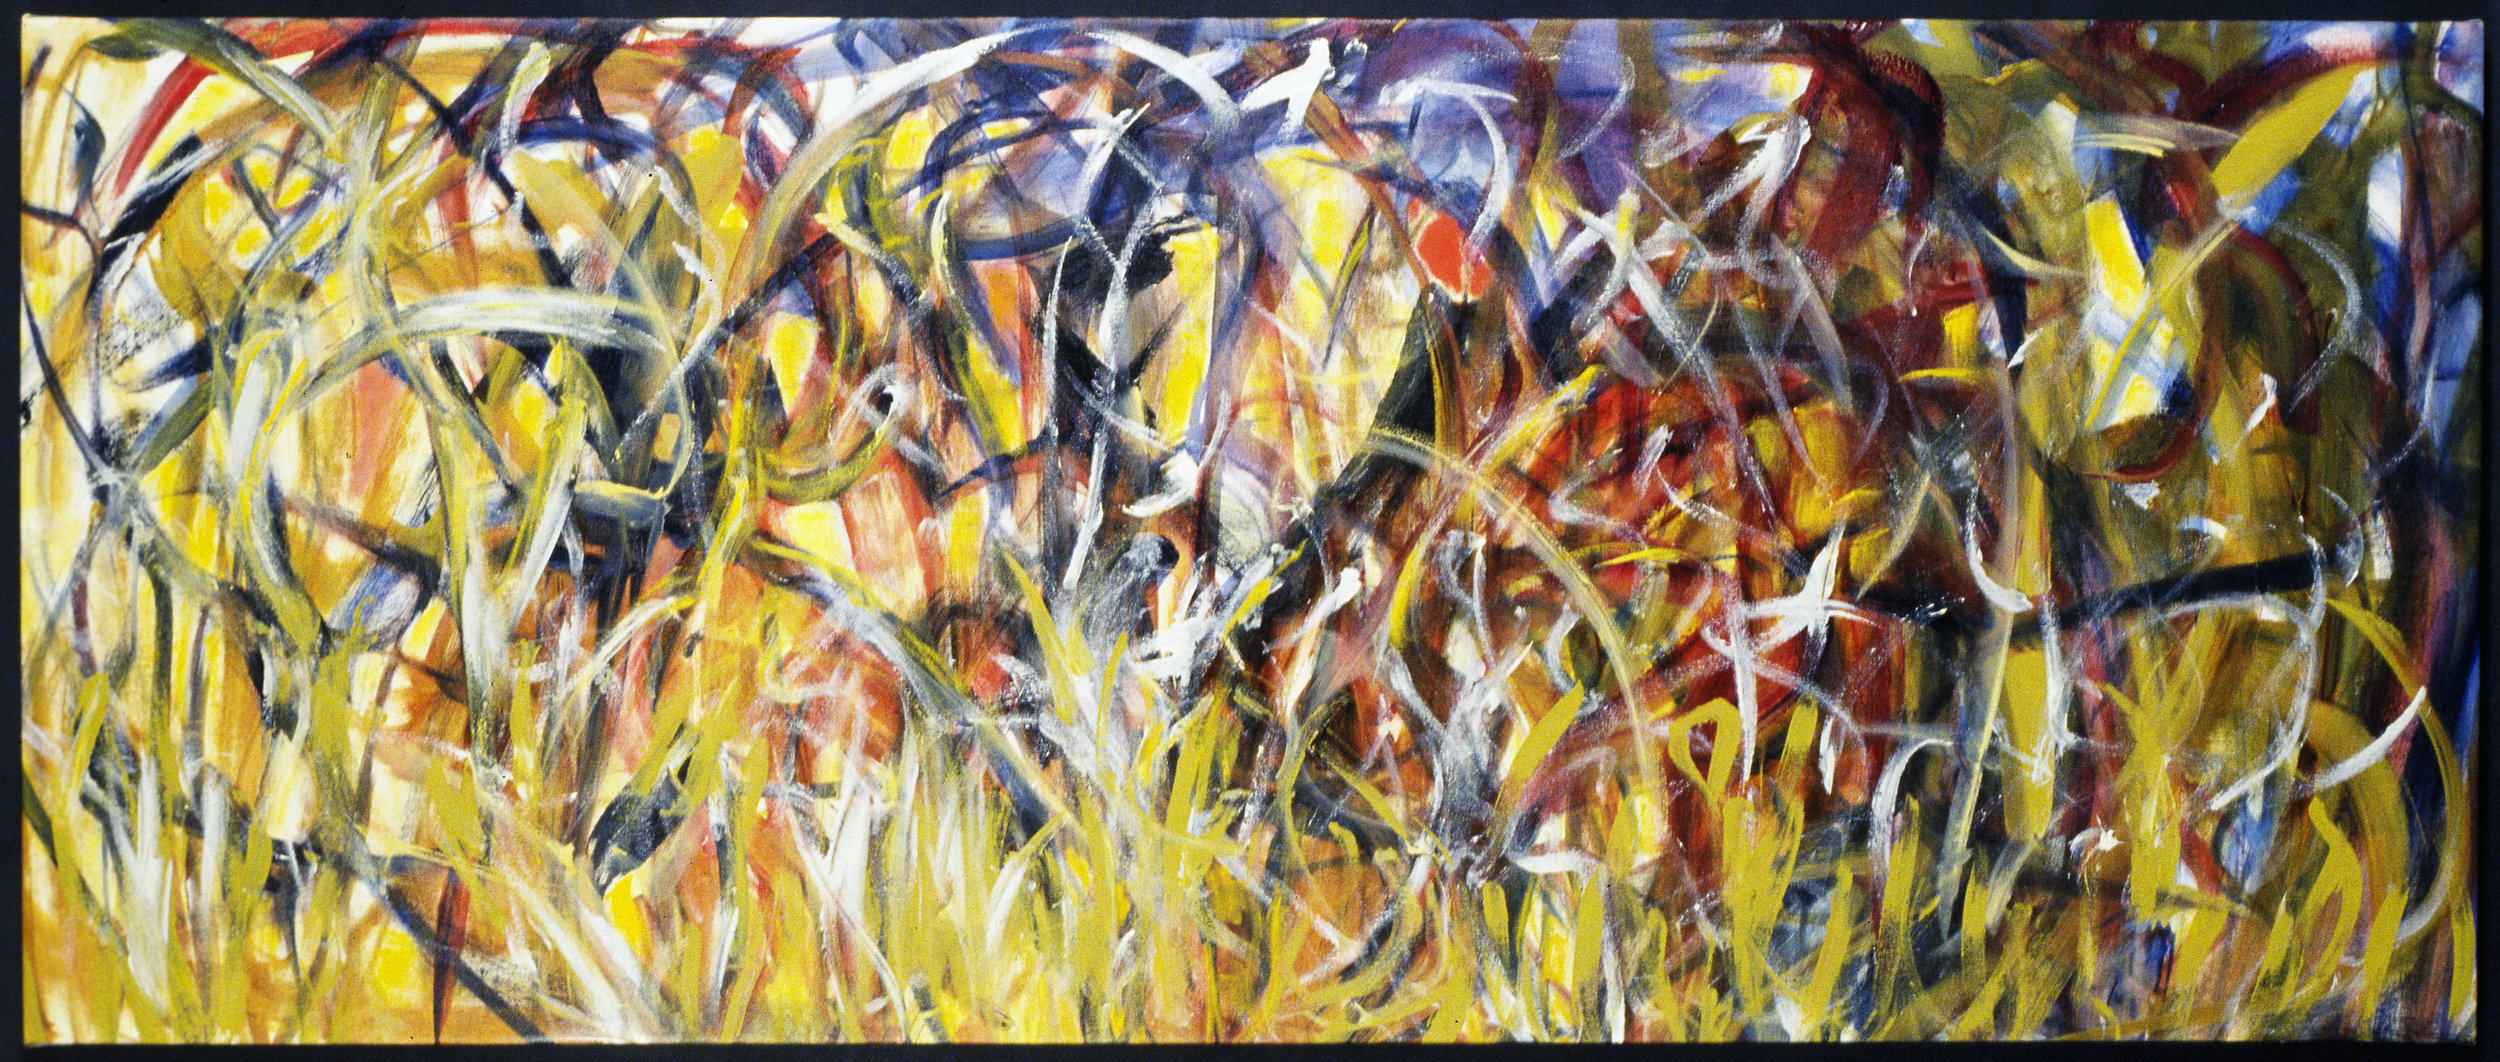 Field of Glory  2002, acrylic-oil on canvas, 27x66 in